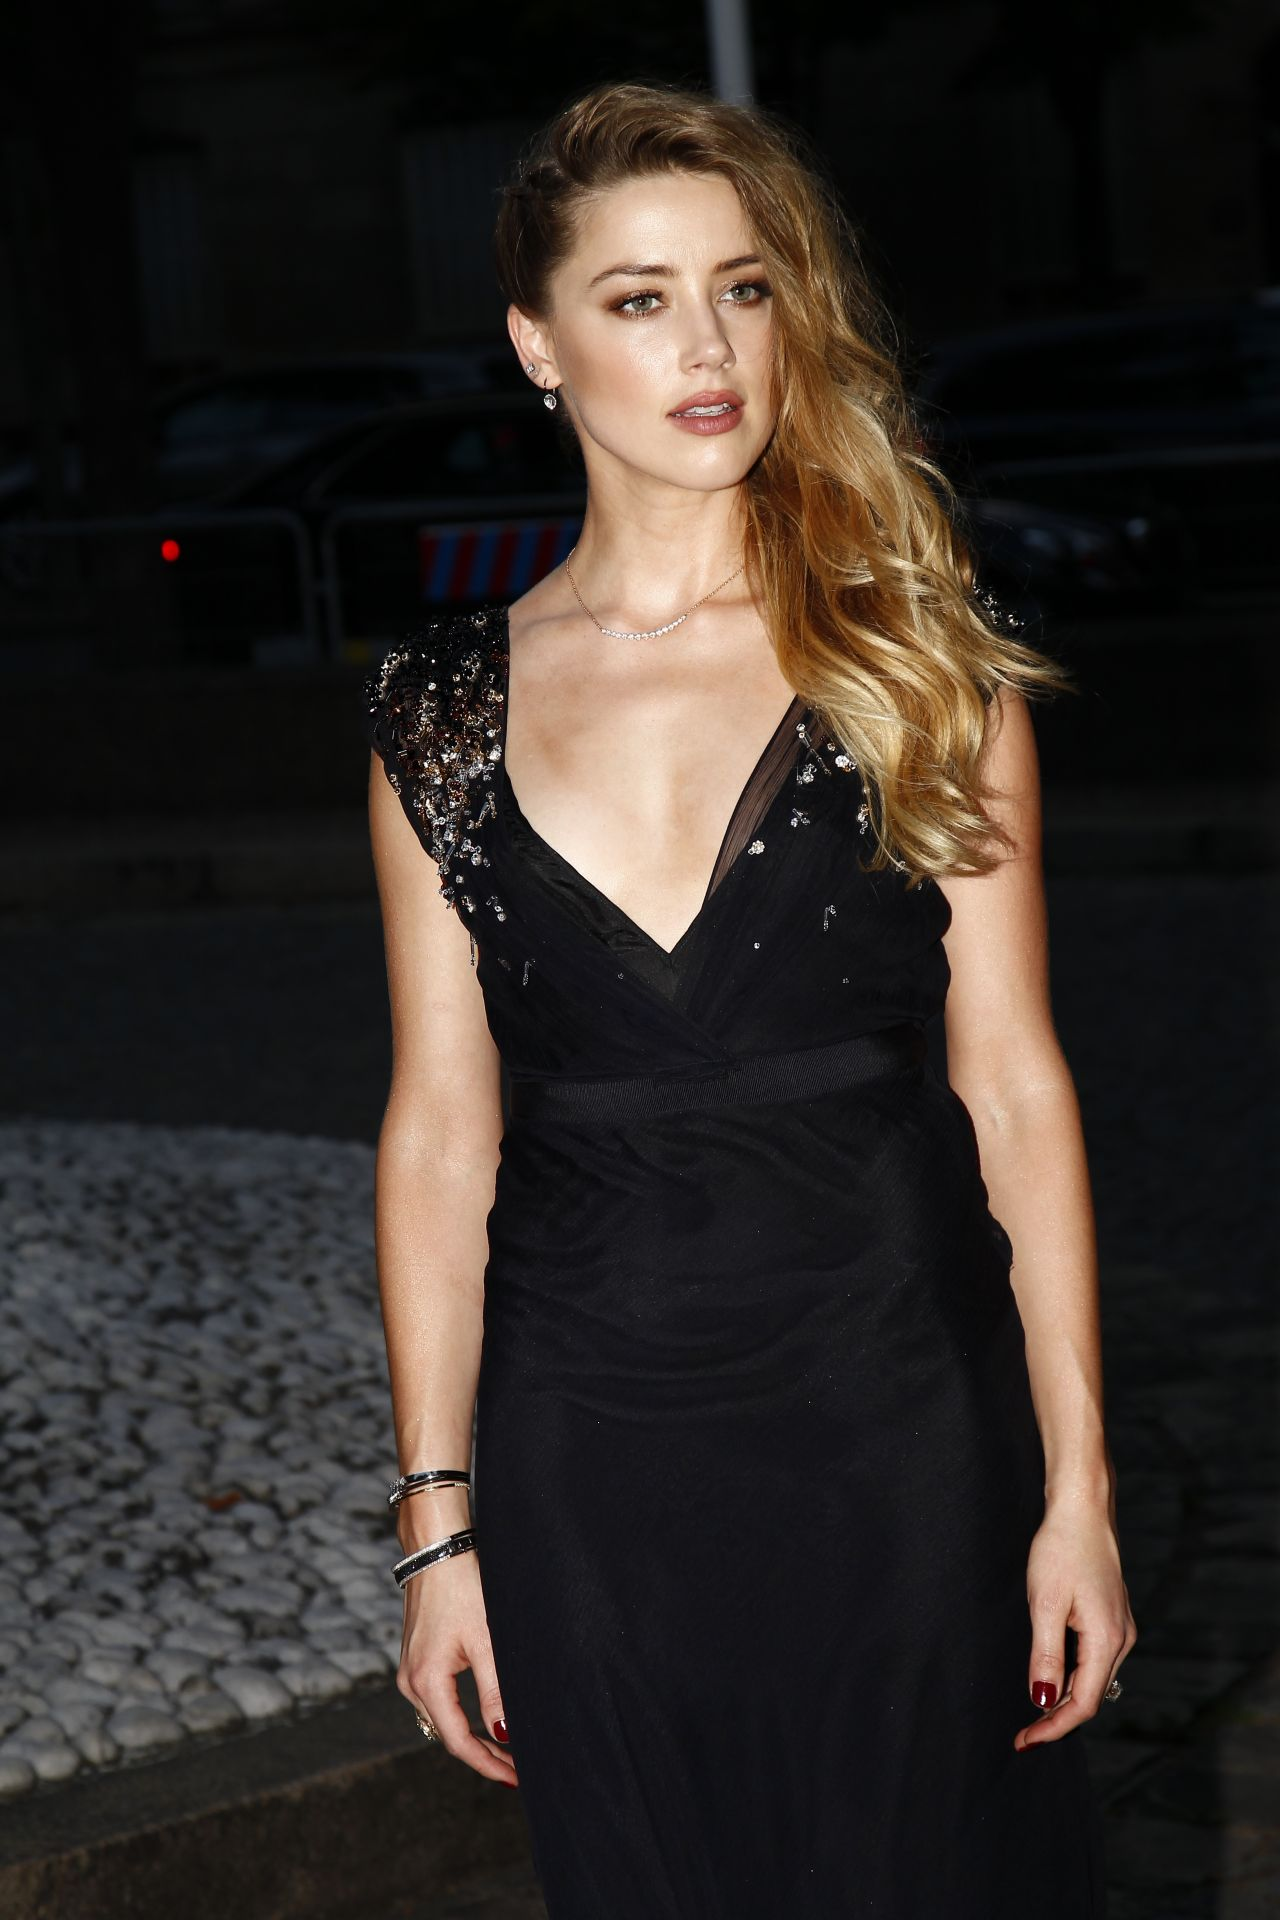 Amber heard with two guys in the informers scandalplanetcom